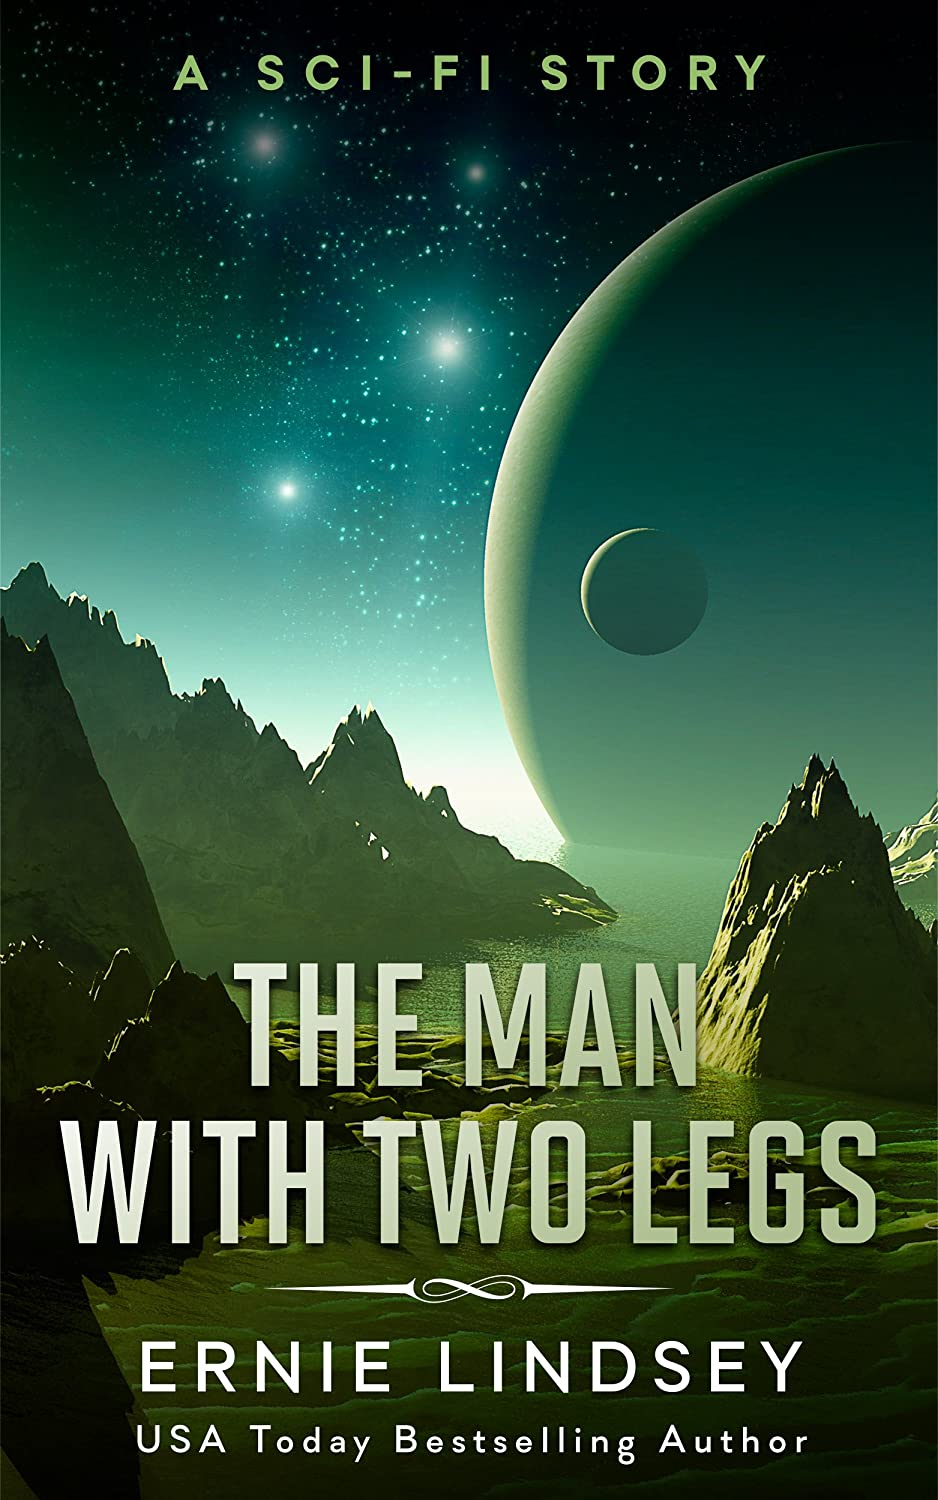 The Man With Two Legs